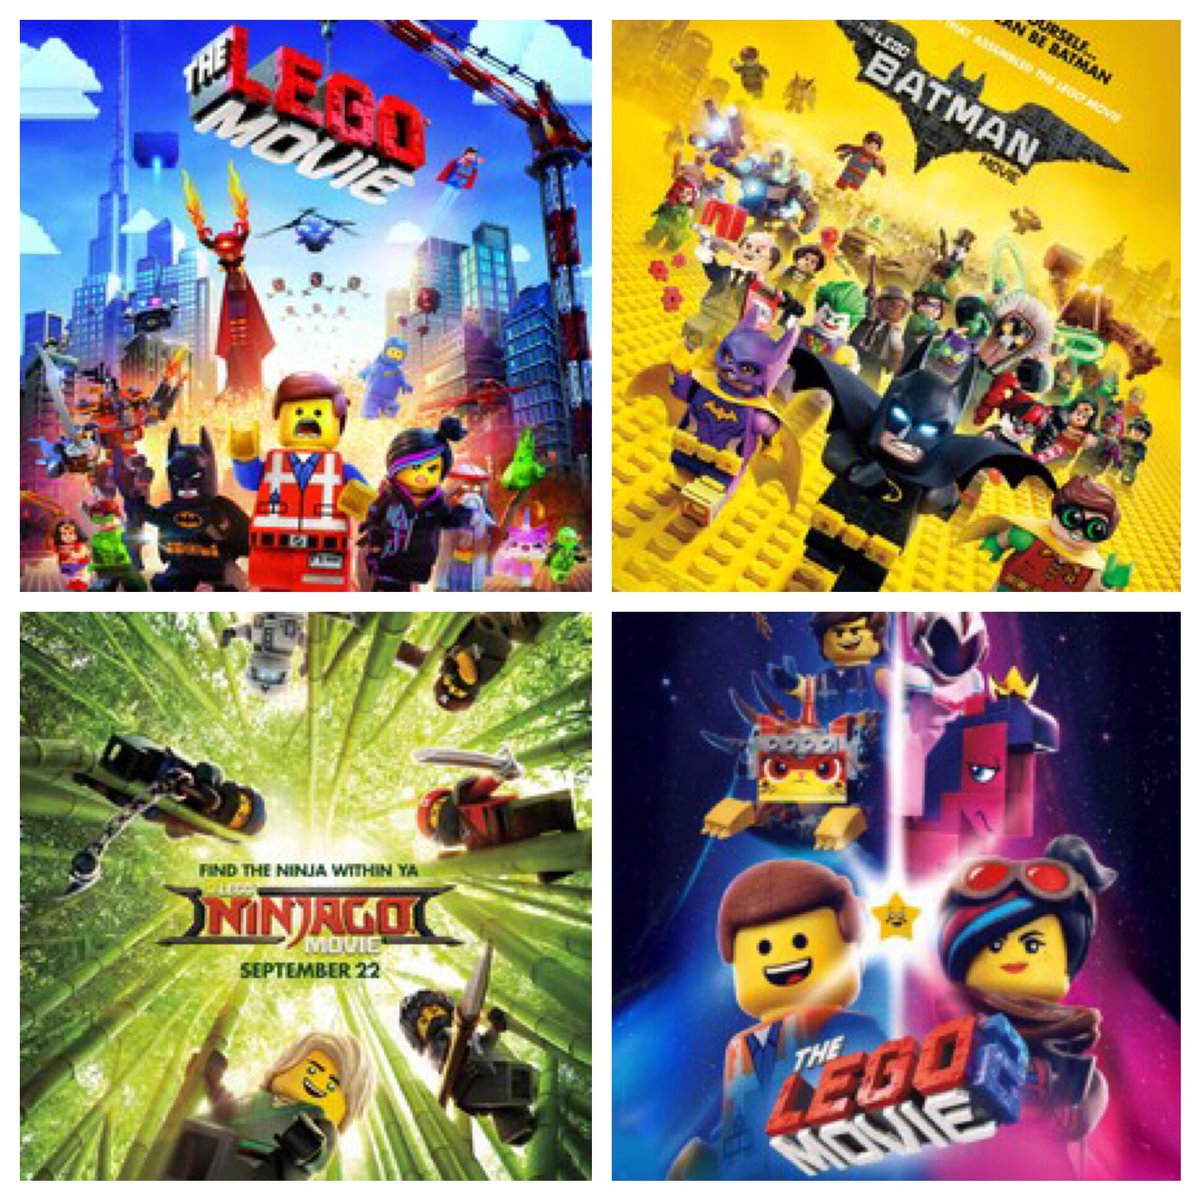 Hector Navarro On Twitter The Lego Movie Franchise 1 The Lego Movie 2 The Lego Batman Movie 3 The Lego Movie 2 The Second Part 4 The Lego Ninjago Movie Https T Co Ryxvrp4eqo